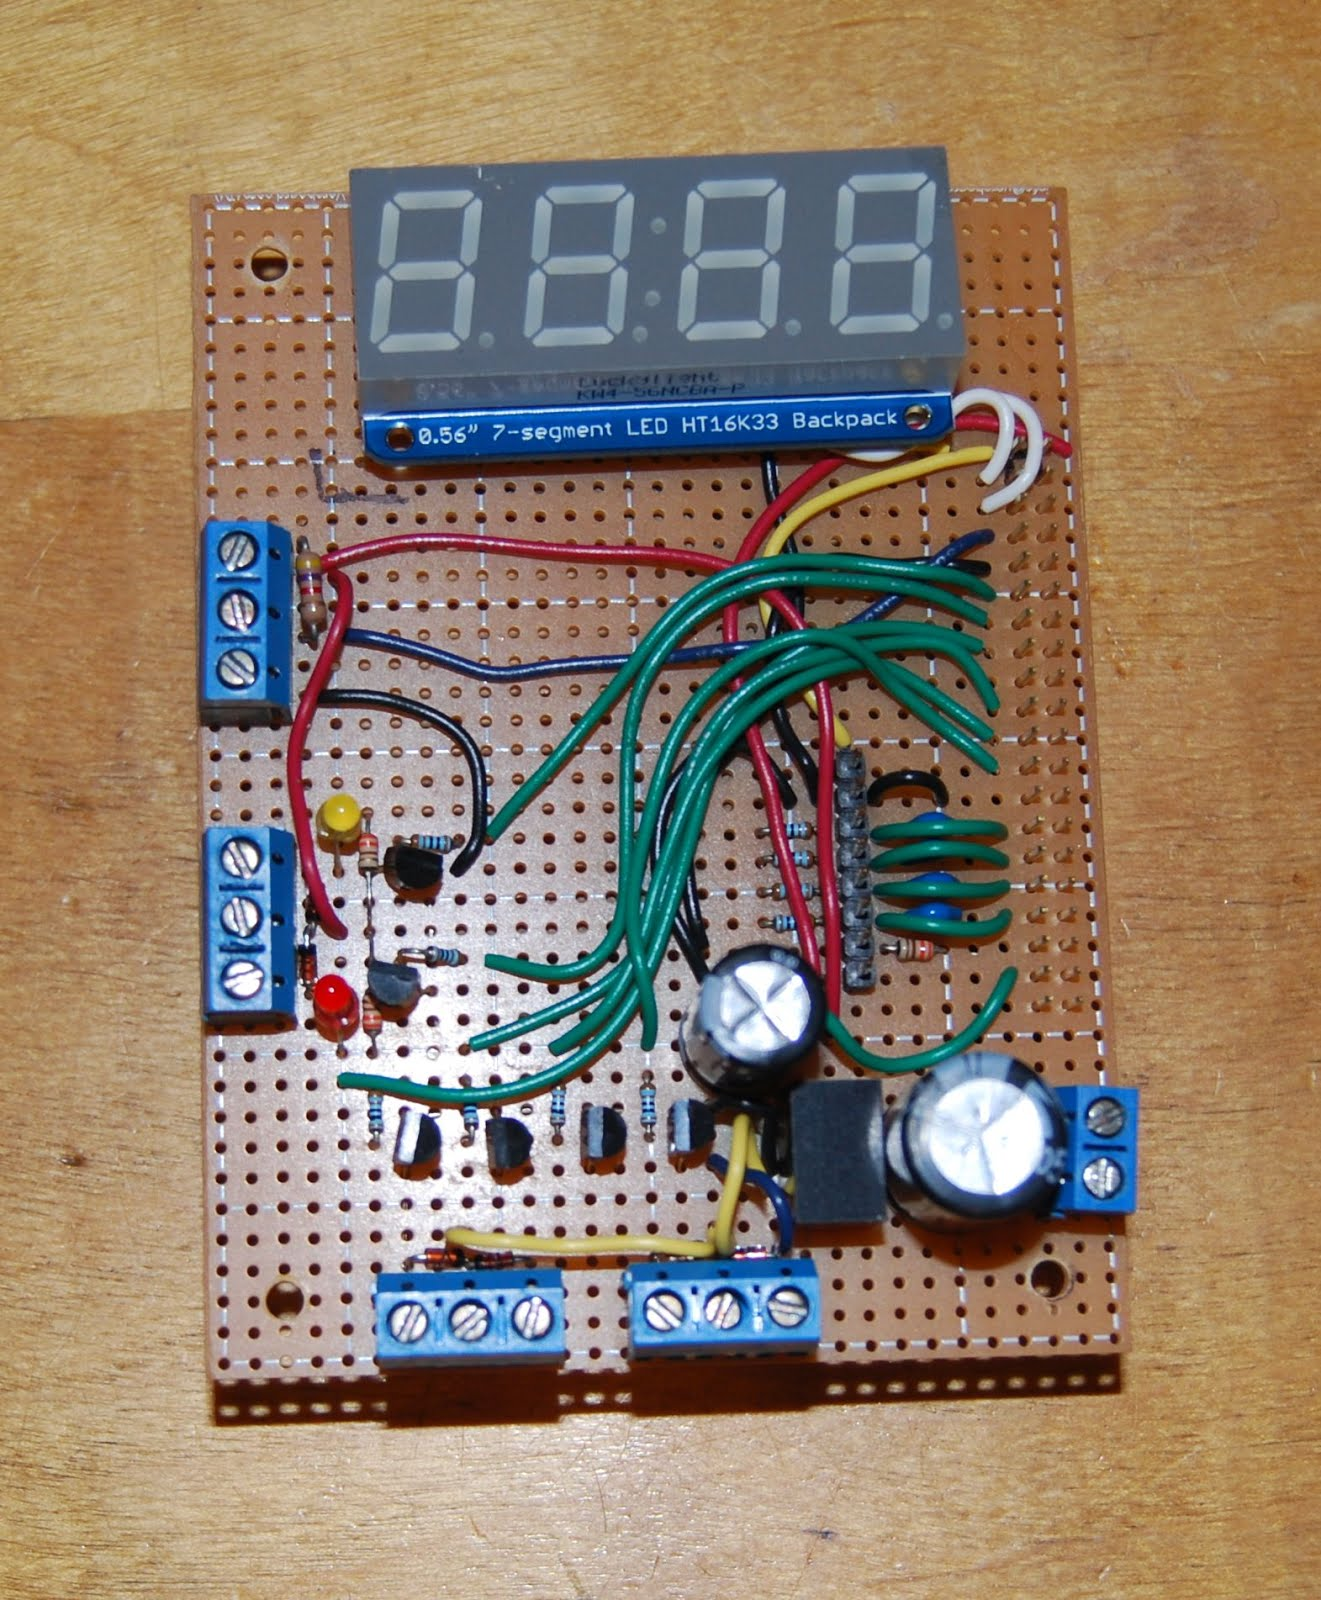 hight resolution of hot tub controller circuit board